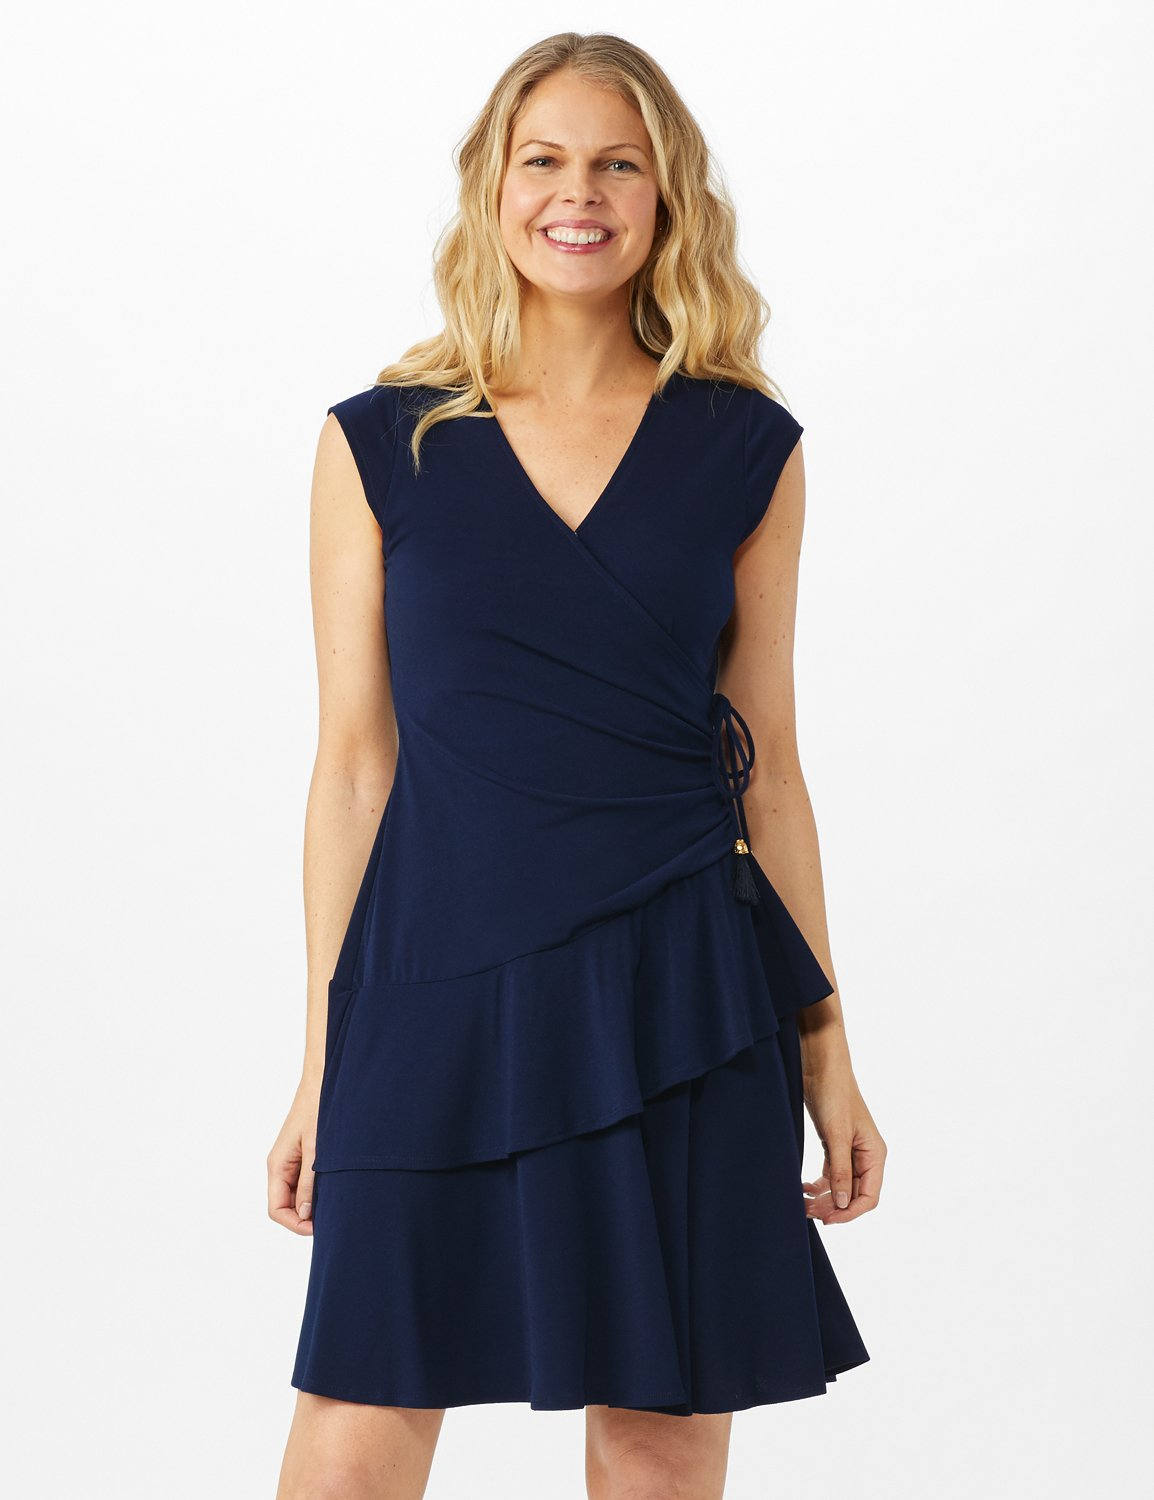 Faux Wrap with Side Tie Crepe Knit with Tiered Skirt -Navy - Front